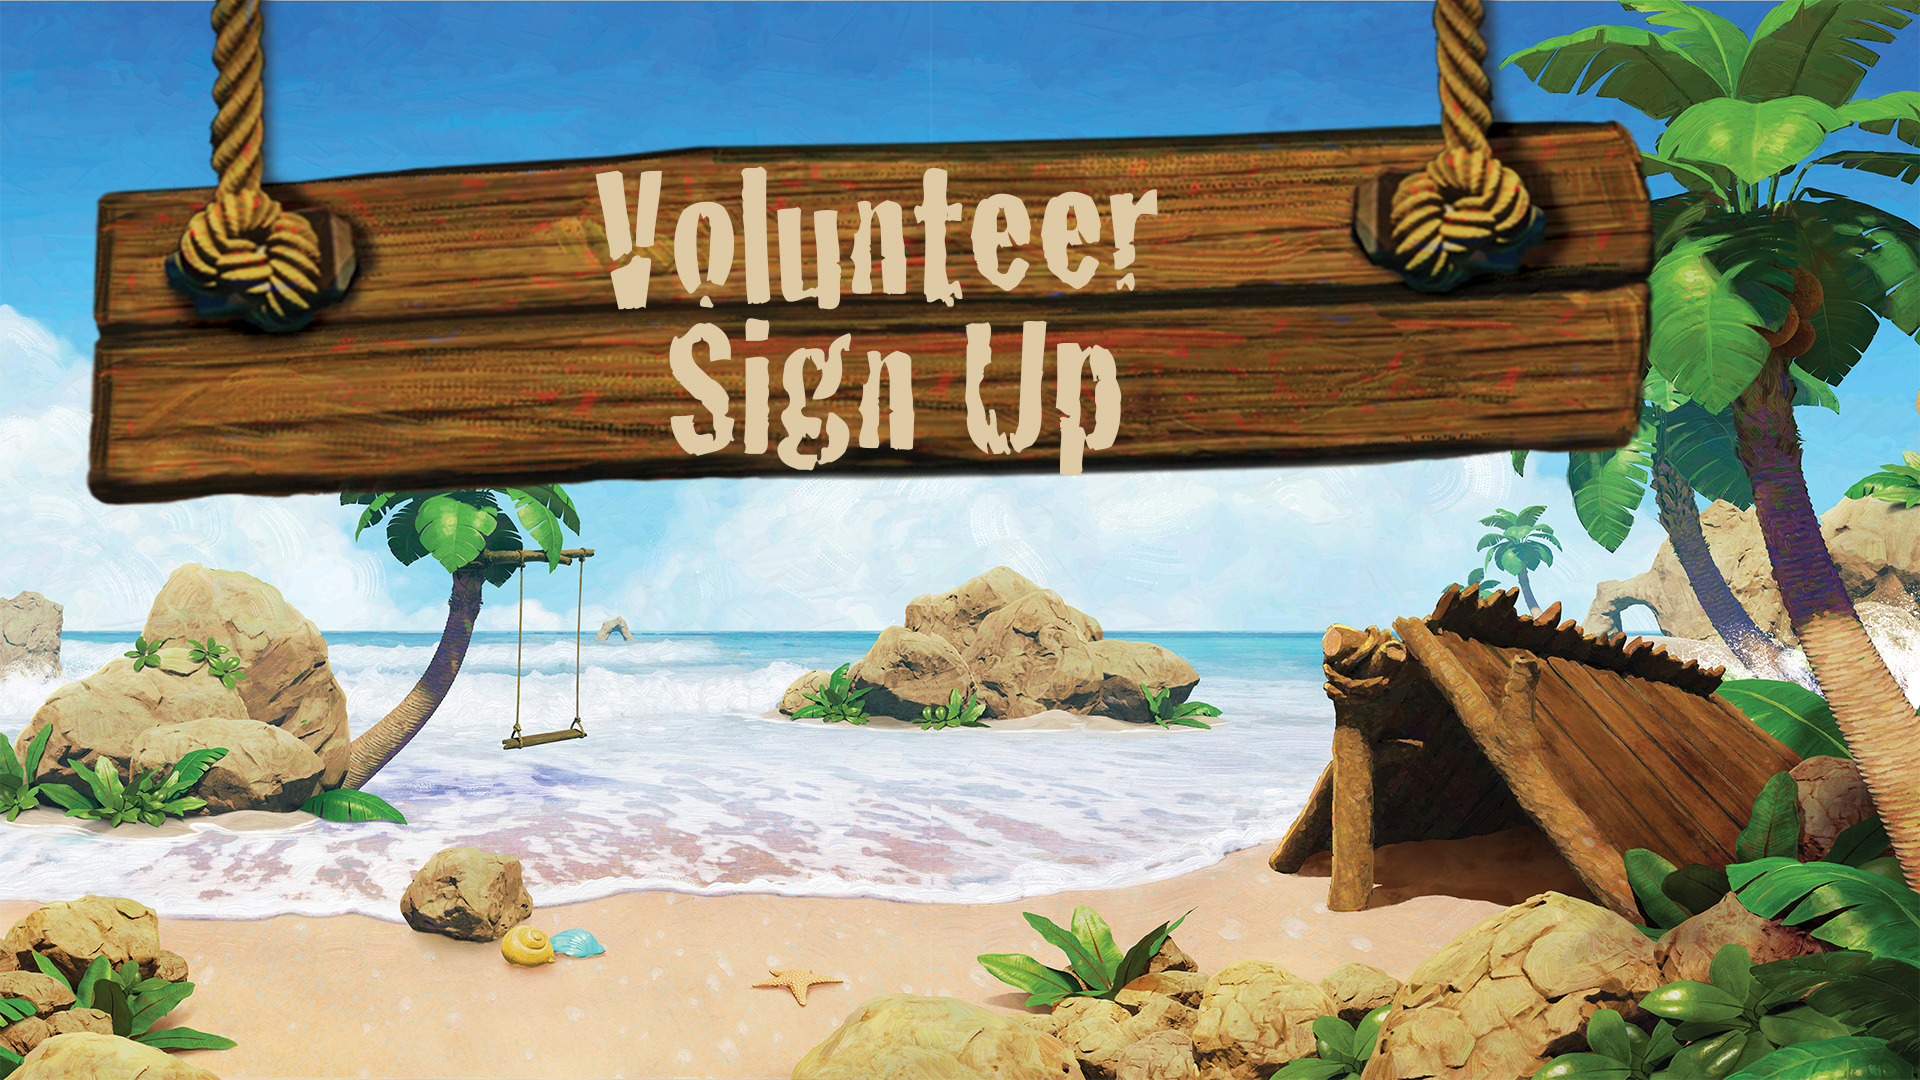 Shipwrecked vol sign up